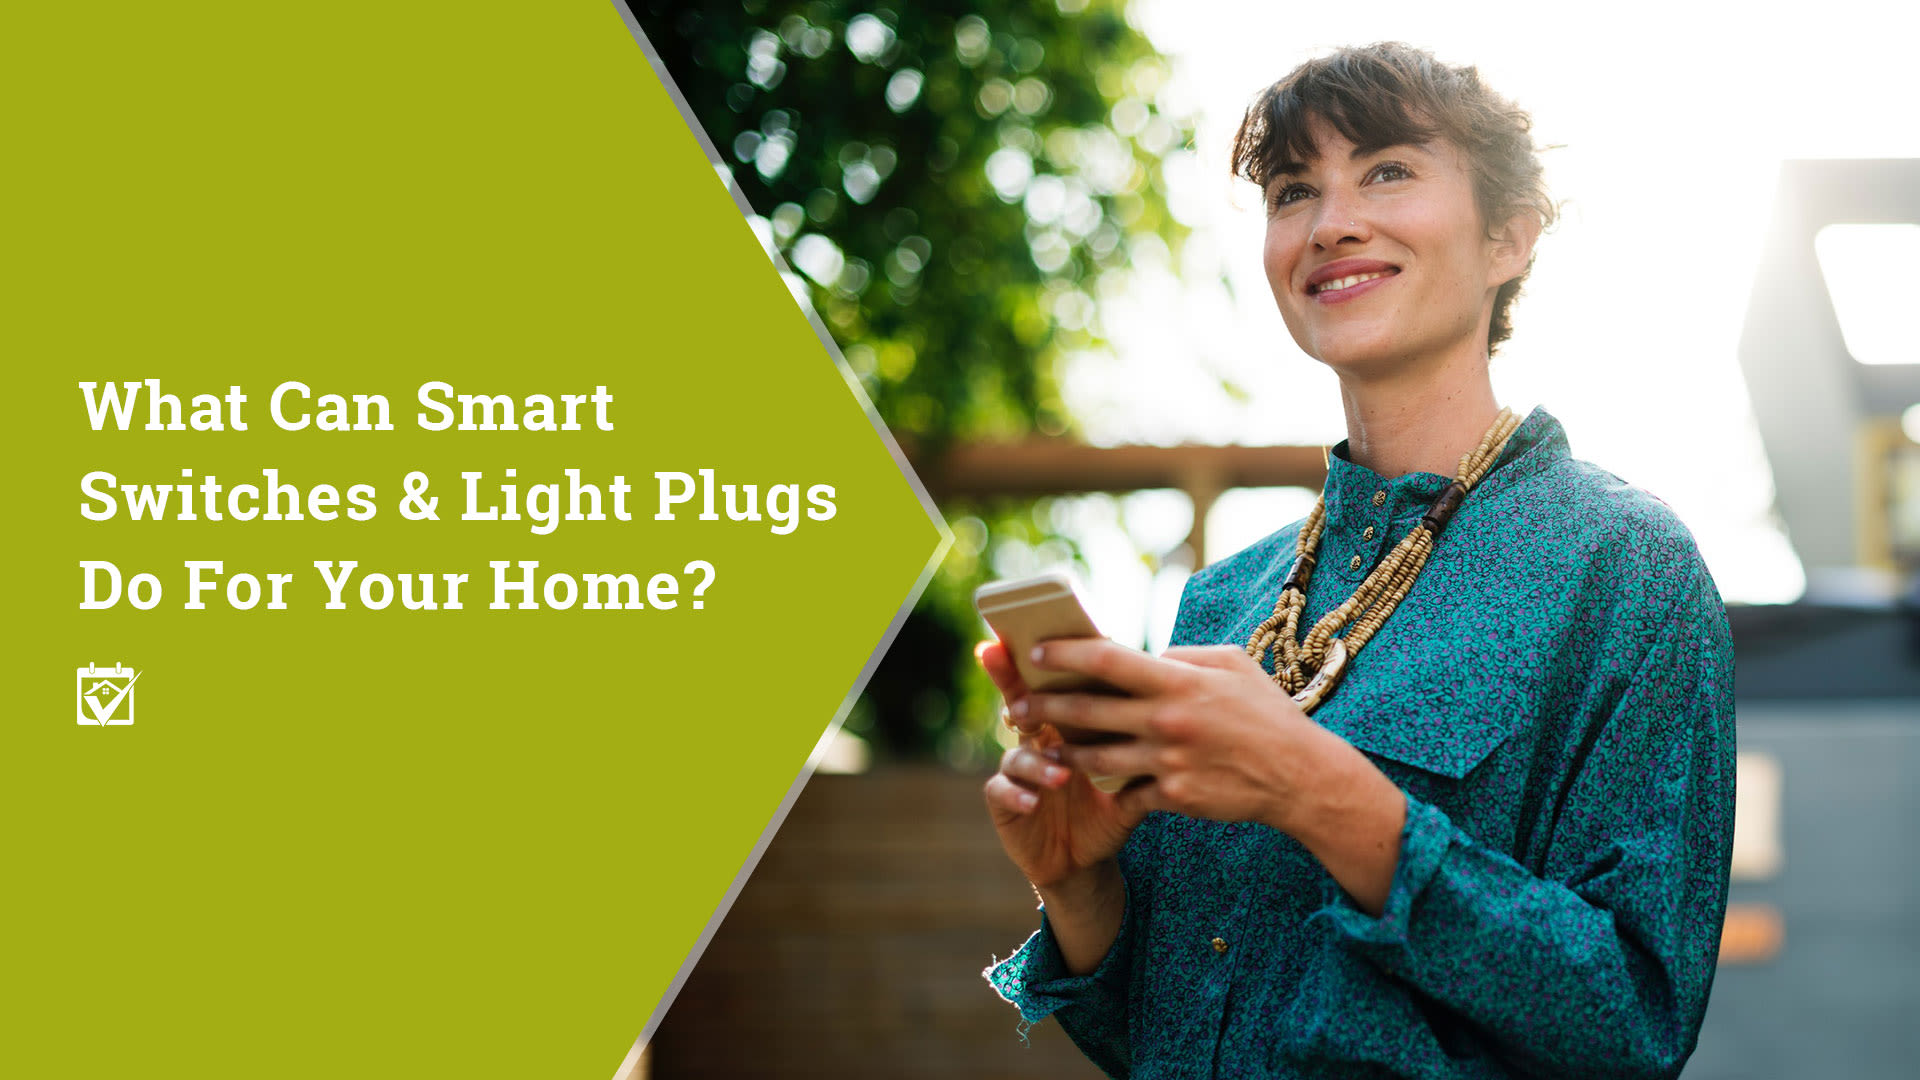 What Can Smart Switches and Light Plugs Do For Your Home?